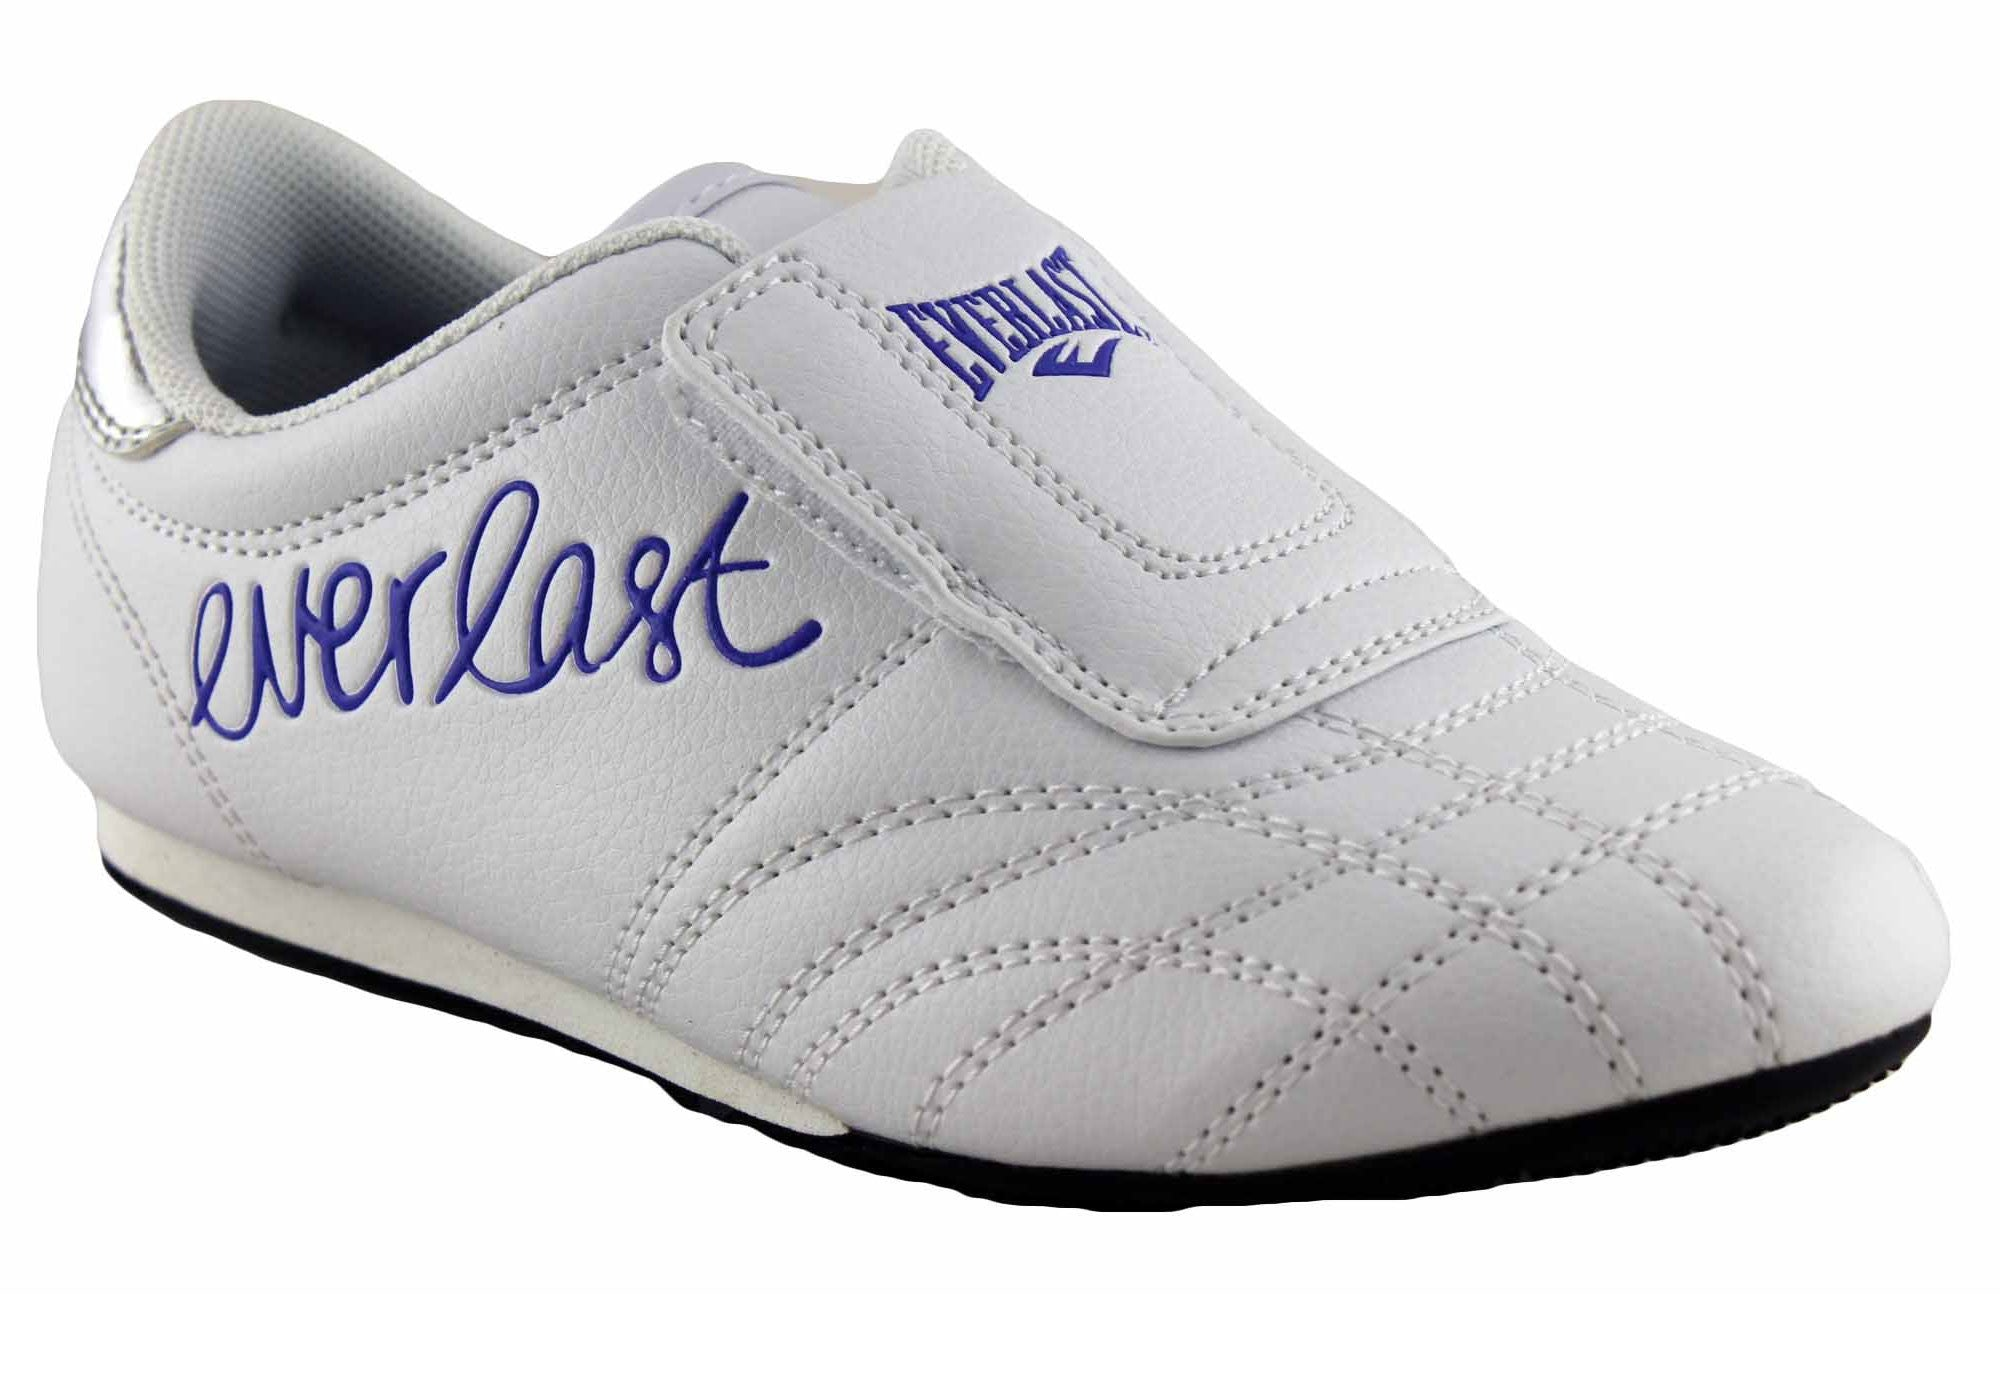 Everlast Sassa Youths/Girls Slip On Casual Sneaker